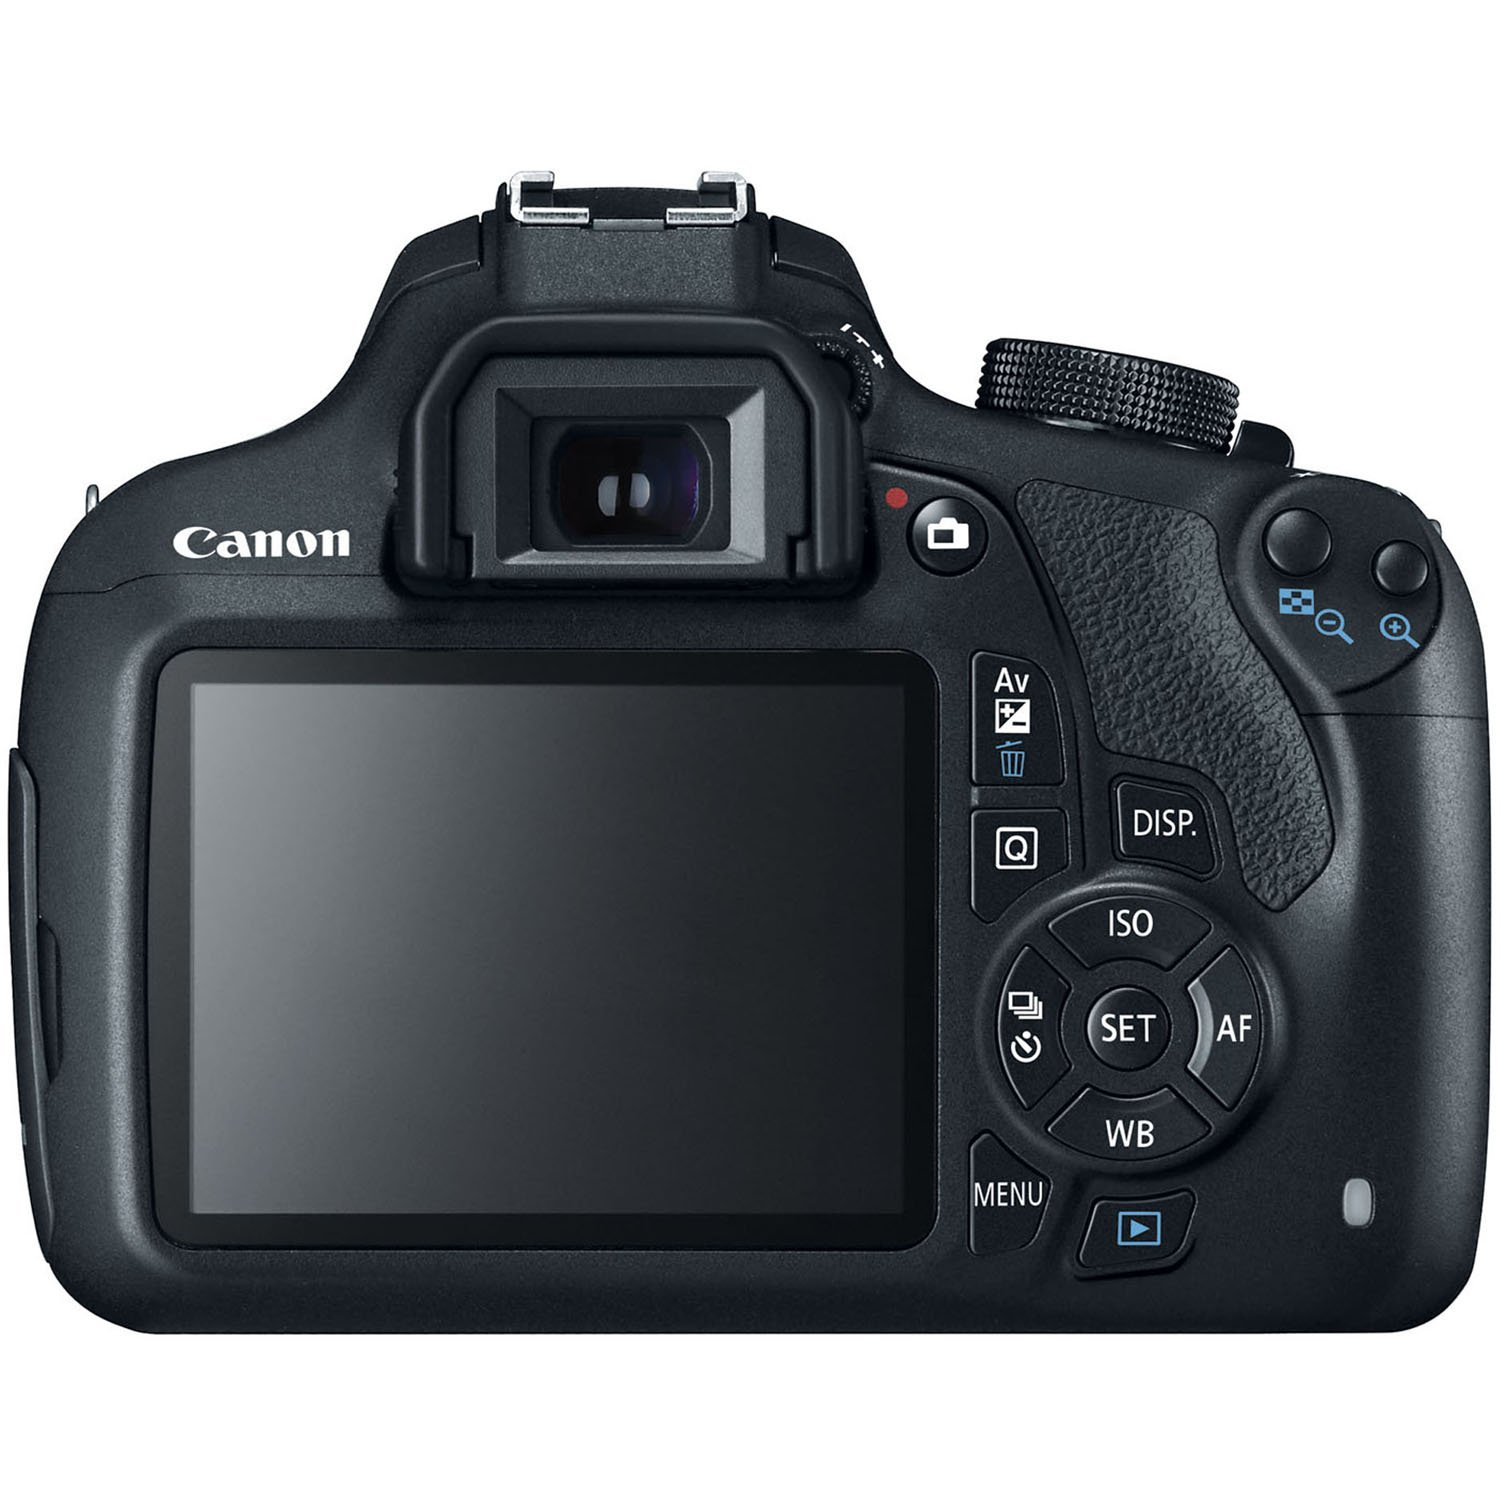 Camera Canon Eos 1100d 12mp Dslr Camera With 18-55mm Lens amazon com canon eos rebel t5 digital slr camera kit with ef s 18 55mm is ii lens photo